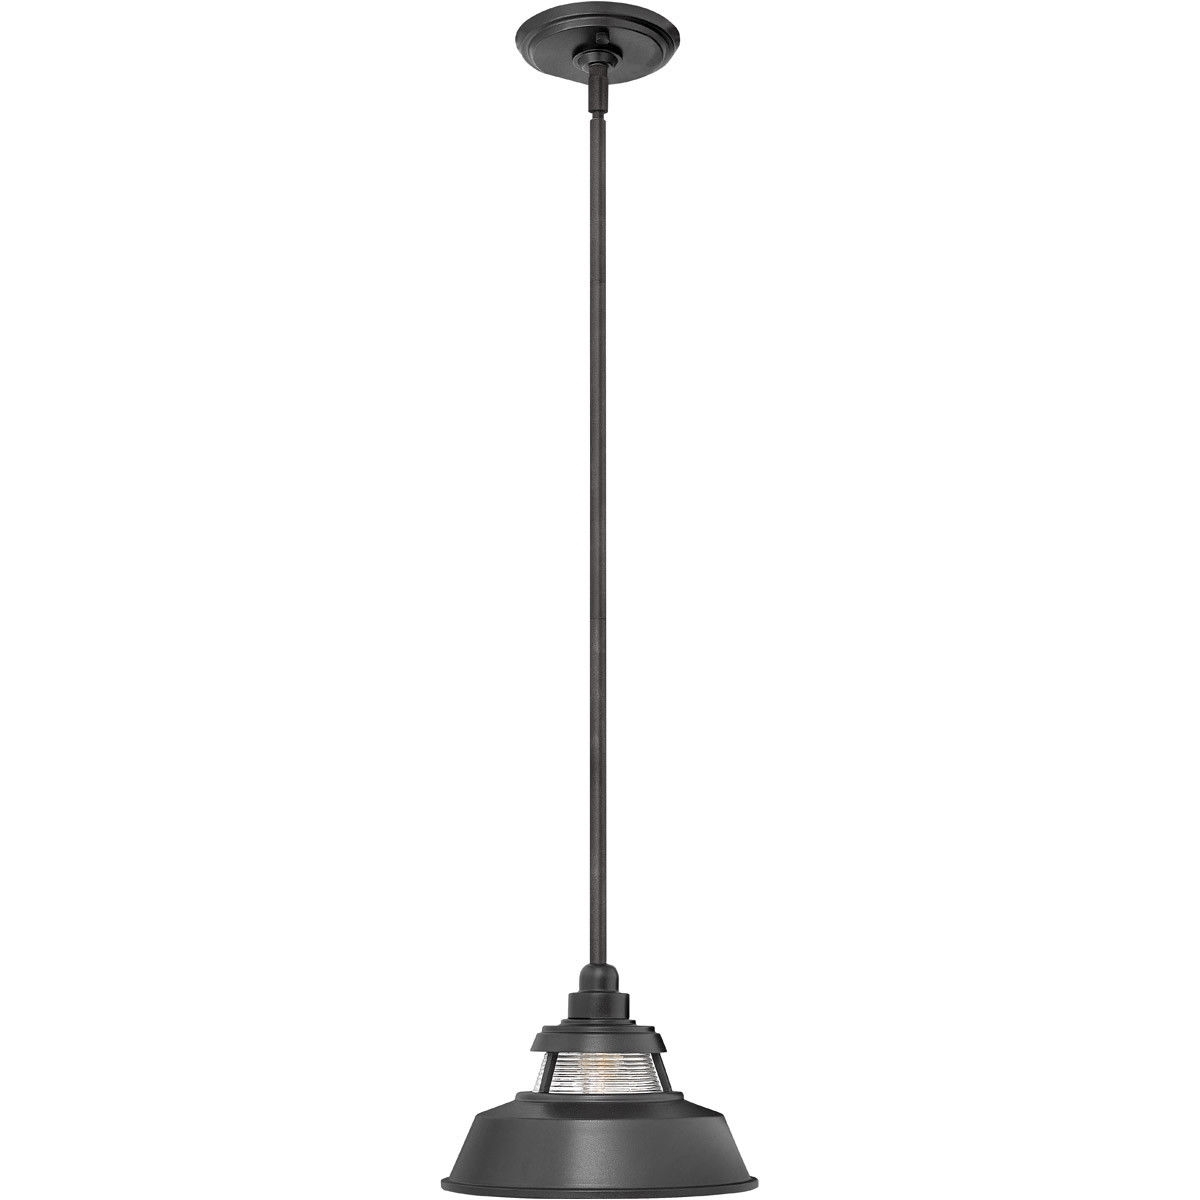 Hinkley Lighting 1192Bk Troyer 1 Light 10 Inch Black Outdoor Hanging Within Outdoor Hanging Lights At Ebay (View 10 of 15)